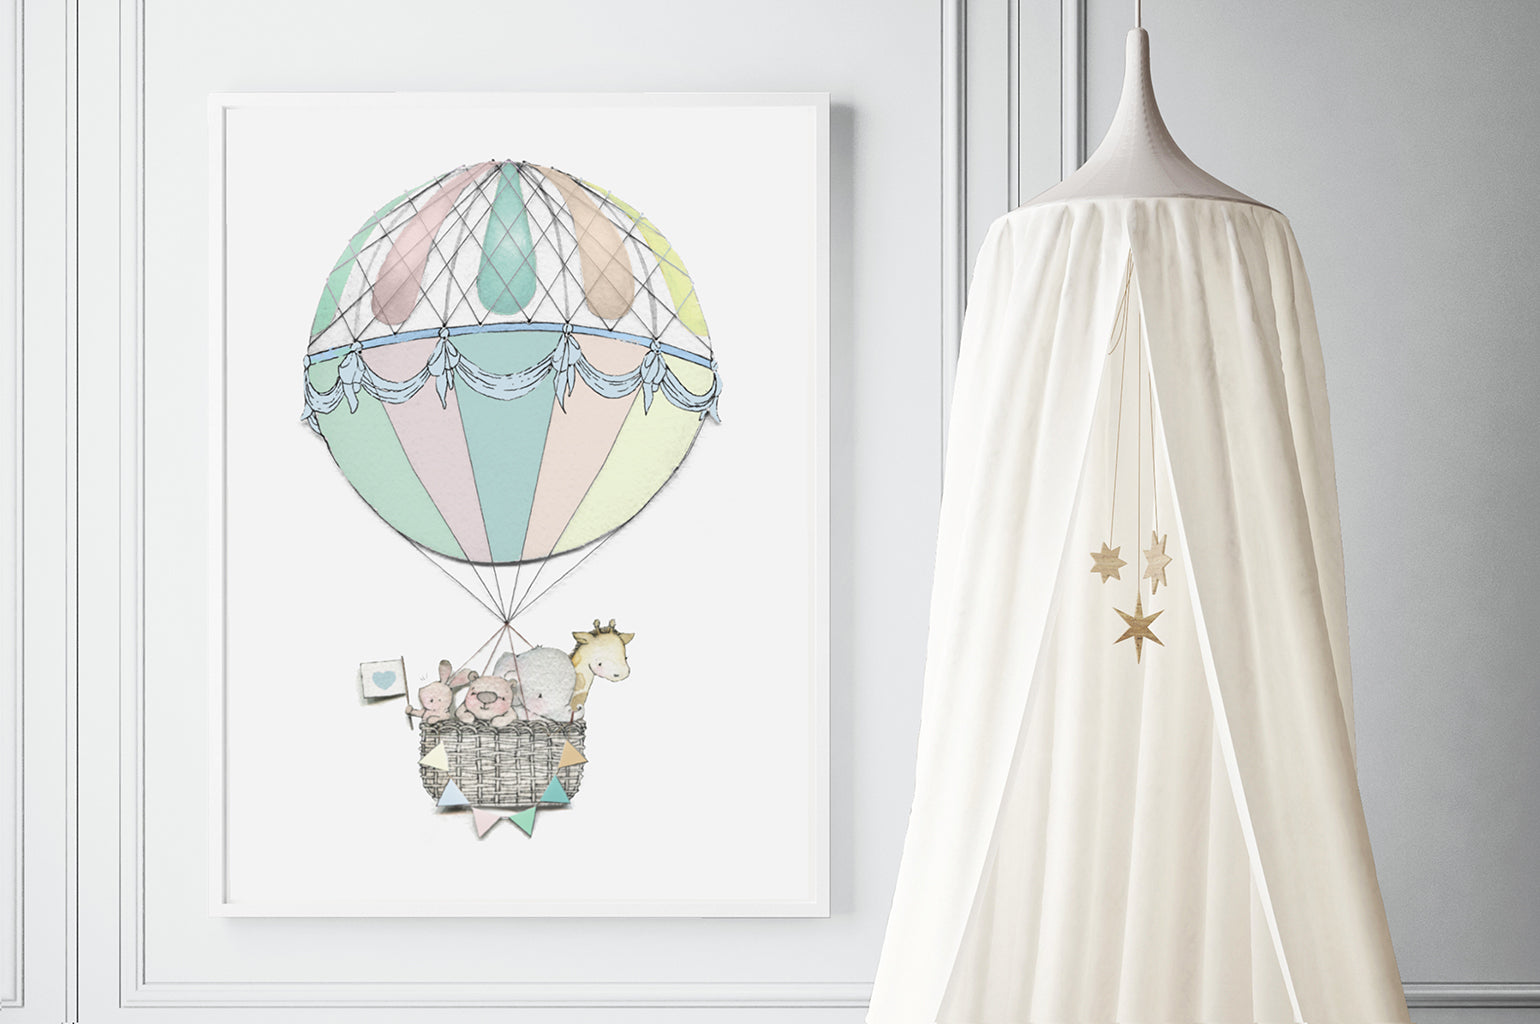 Big Hot Air Balloon Journey Print for Kid's Bedroom